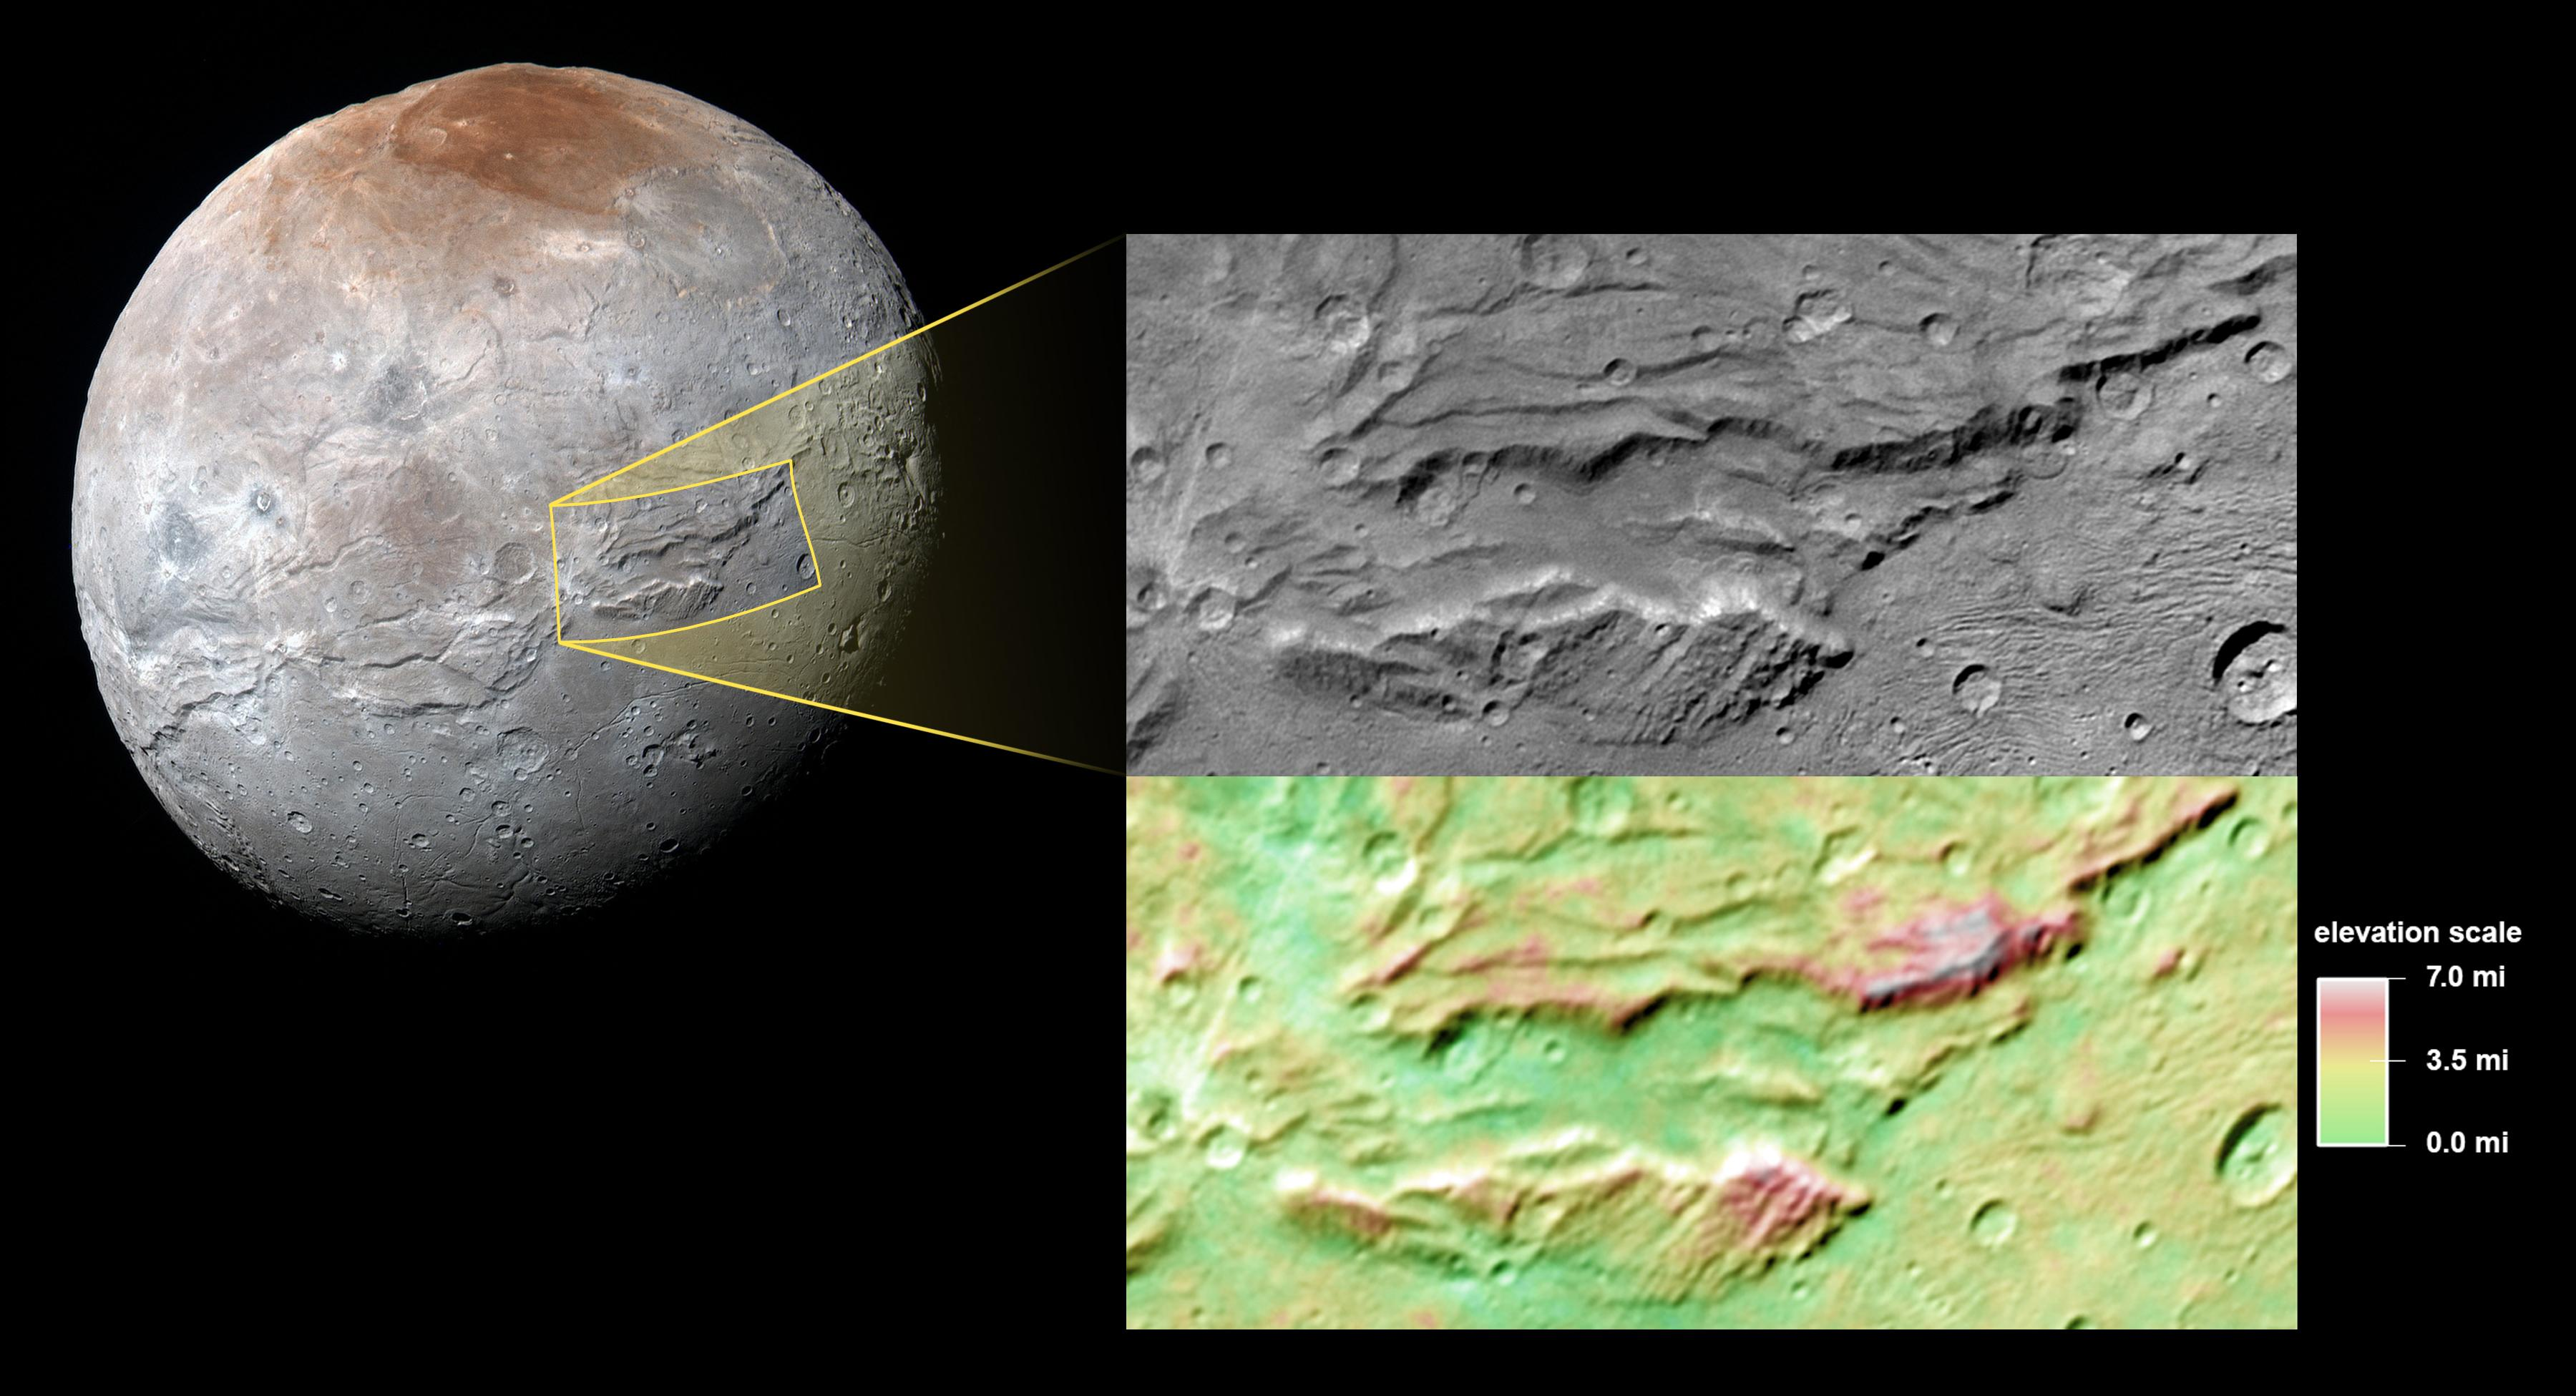 Pluto's 'Hulk-like' Moon Charon: A Possible Ancient Ocean?